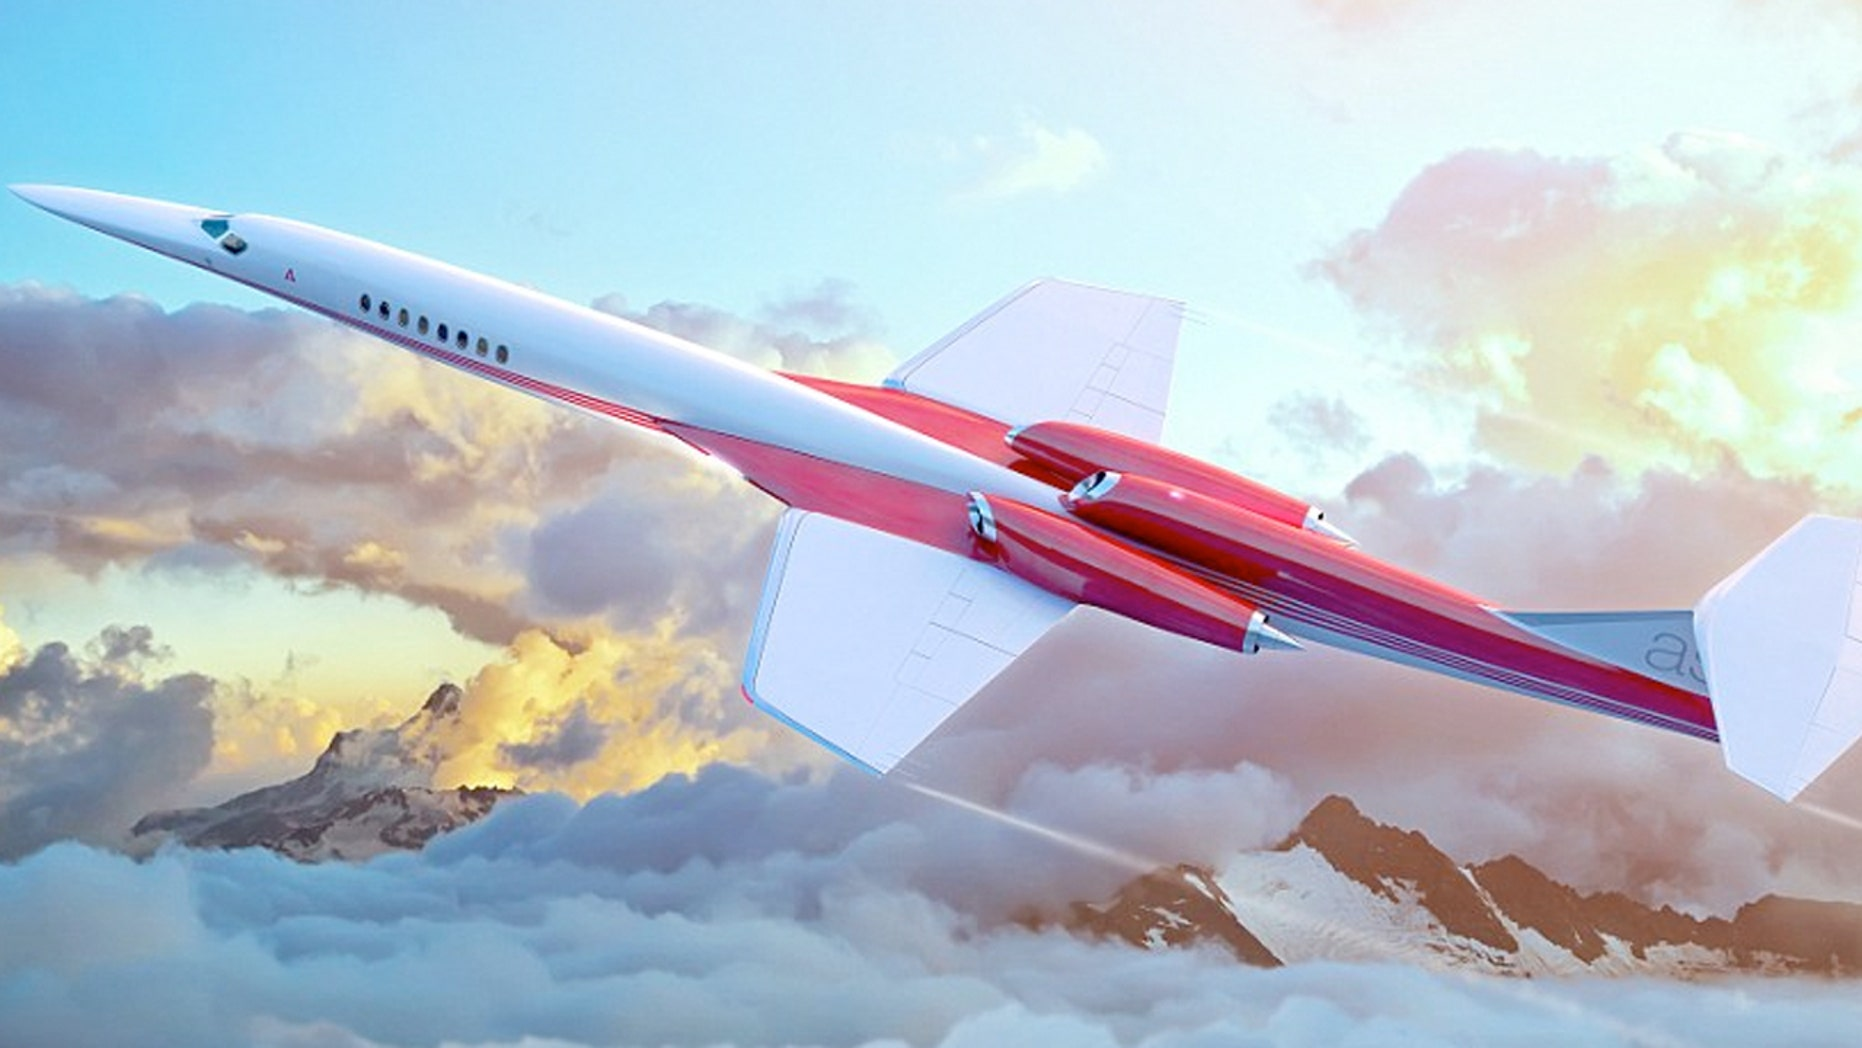 The Aerion AS2 business jet will fly at a top speed of 1,217 mph --which is almost as fast as Concorde, which flew at 1,350 mph.